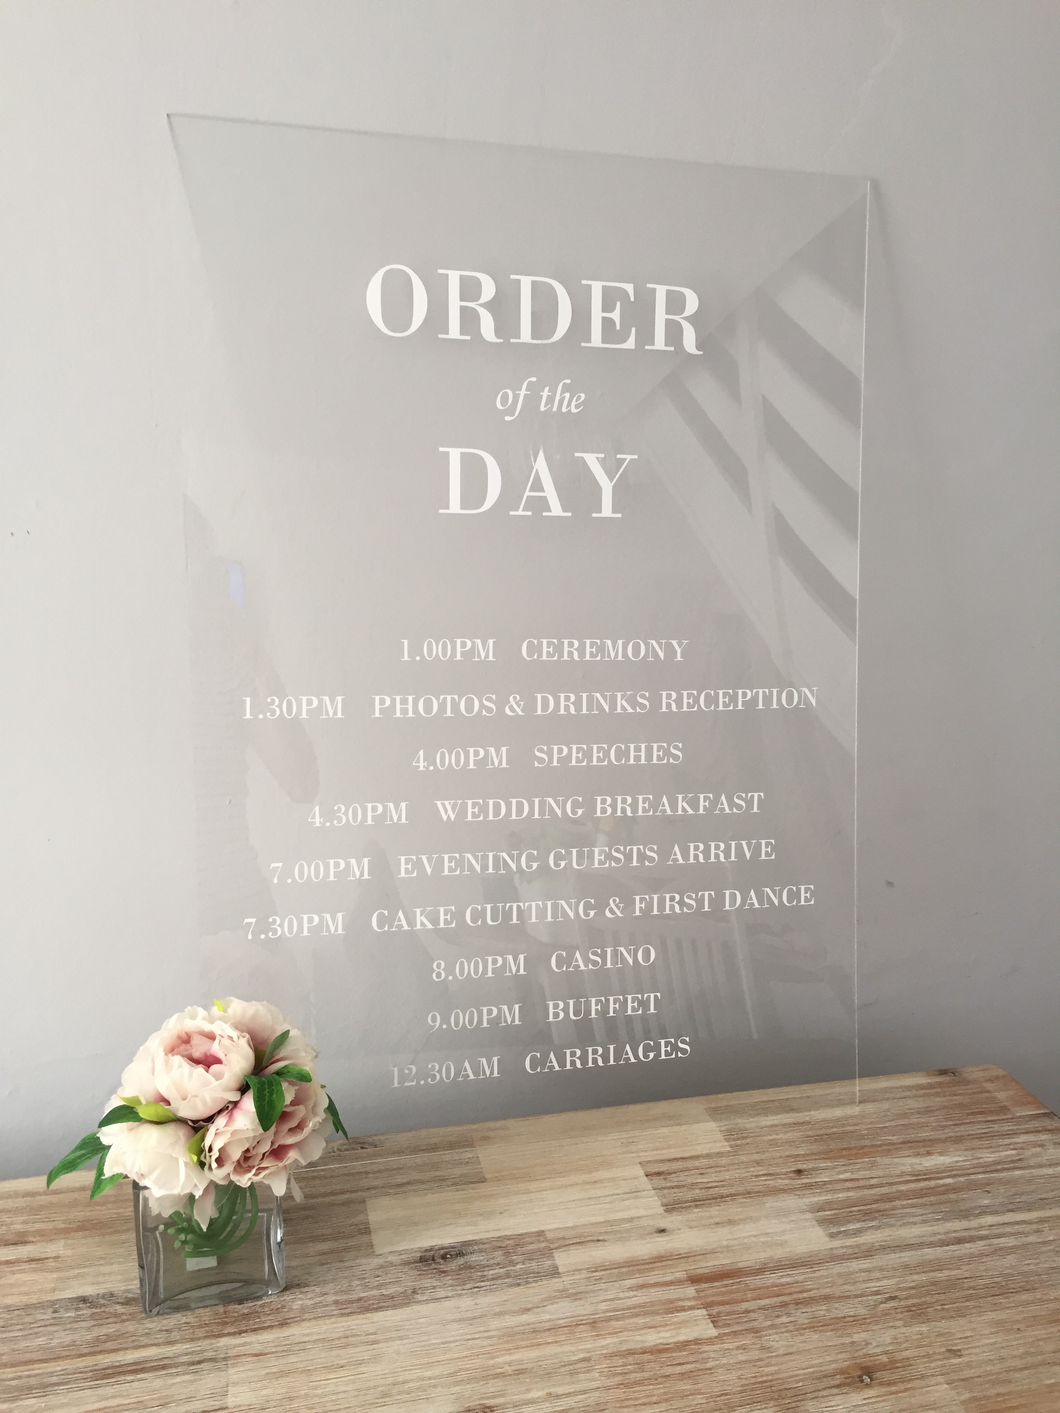 Order of the day acrylic sign